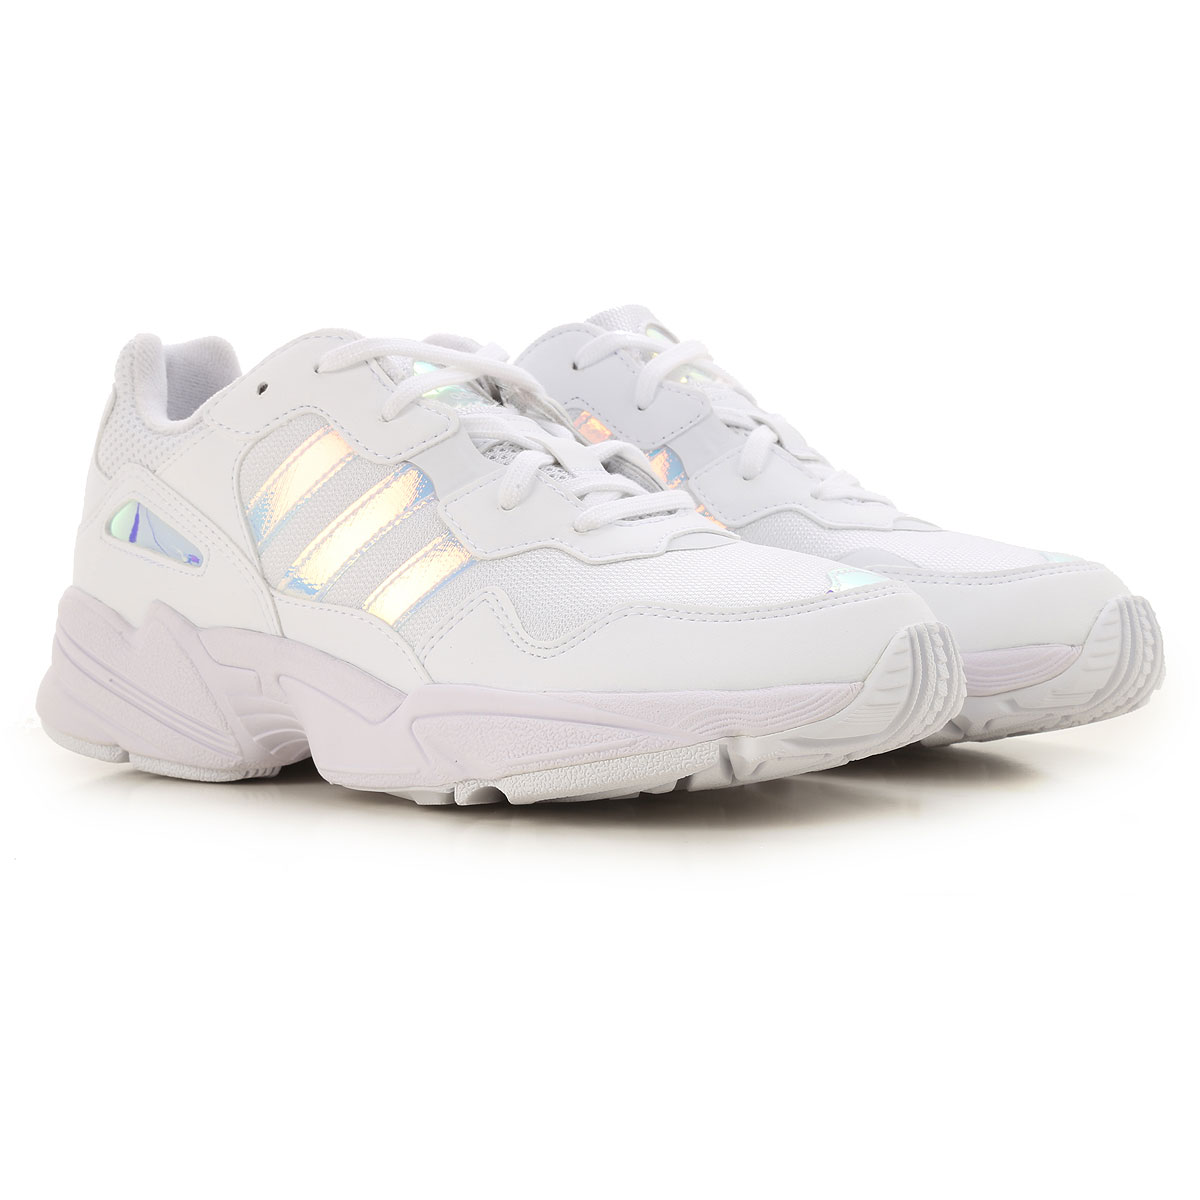 Adidas Kids Shoes for Girls On Sale, White, Leather, 2019, 37 38